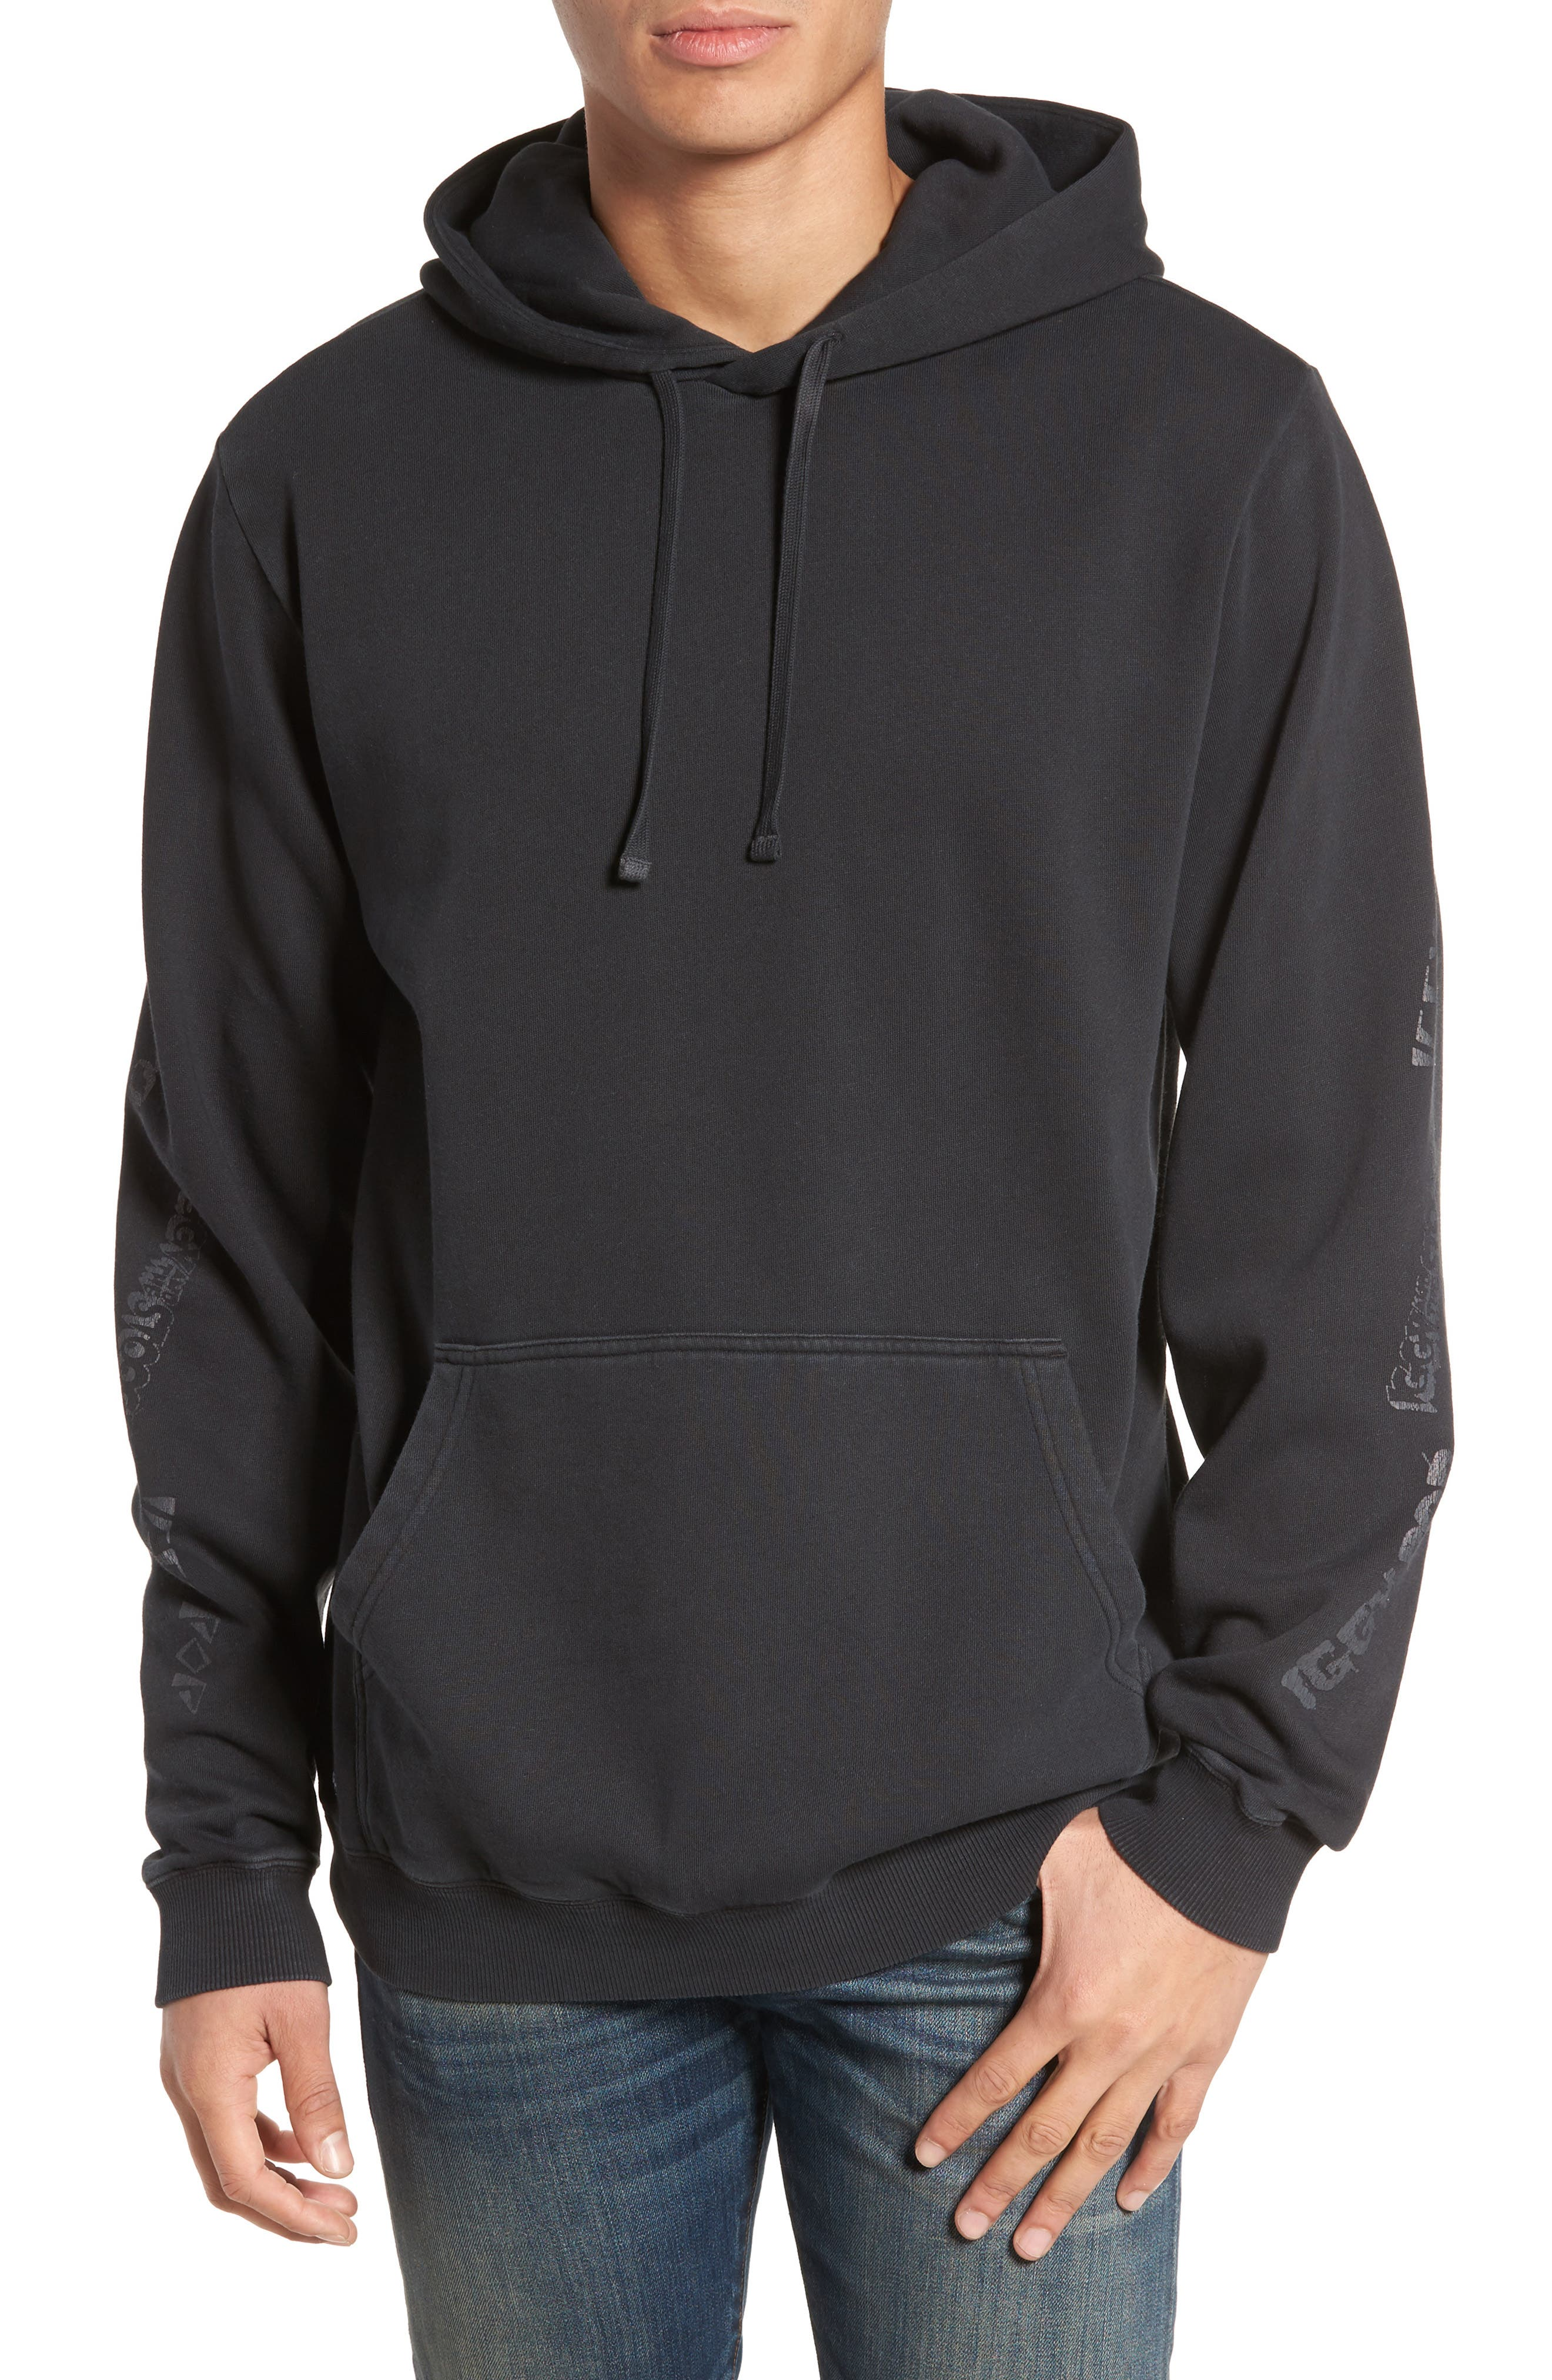 x Iggy Pop LAB Hoodie,                         Main,                         color, Black